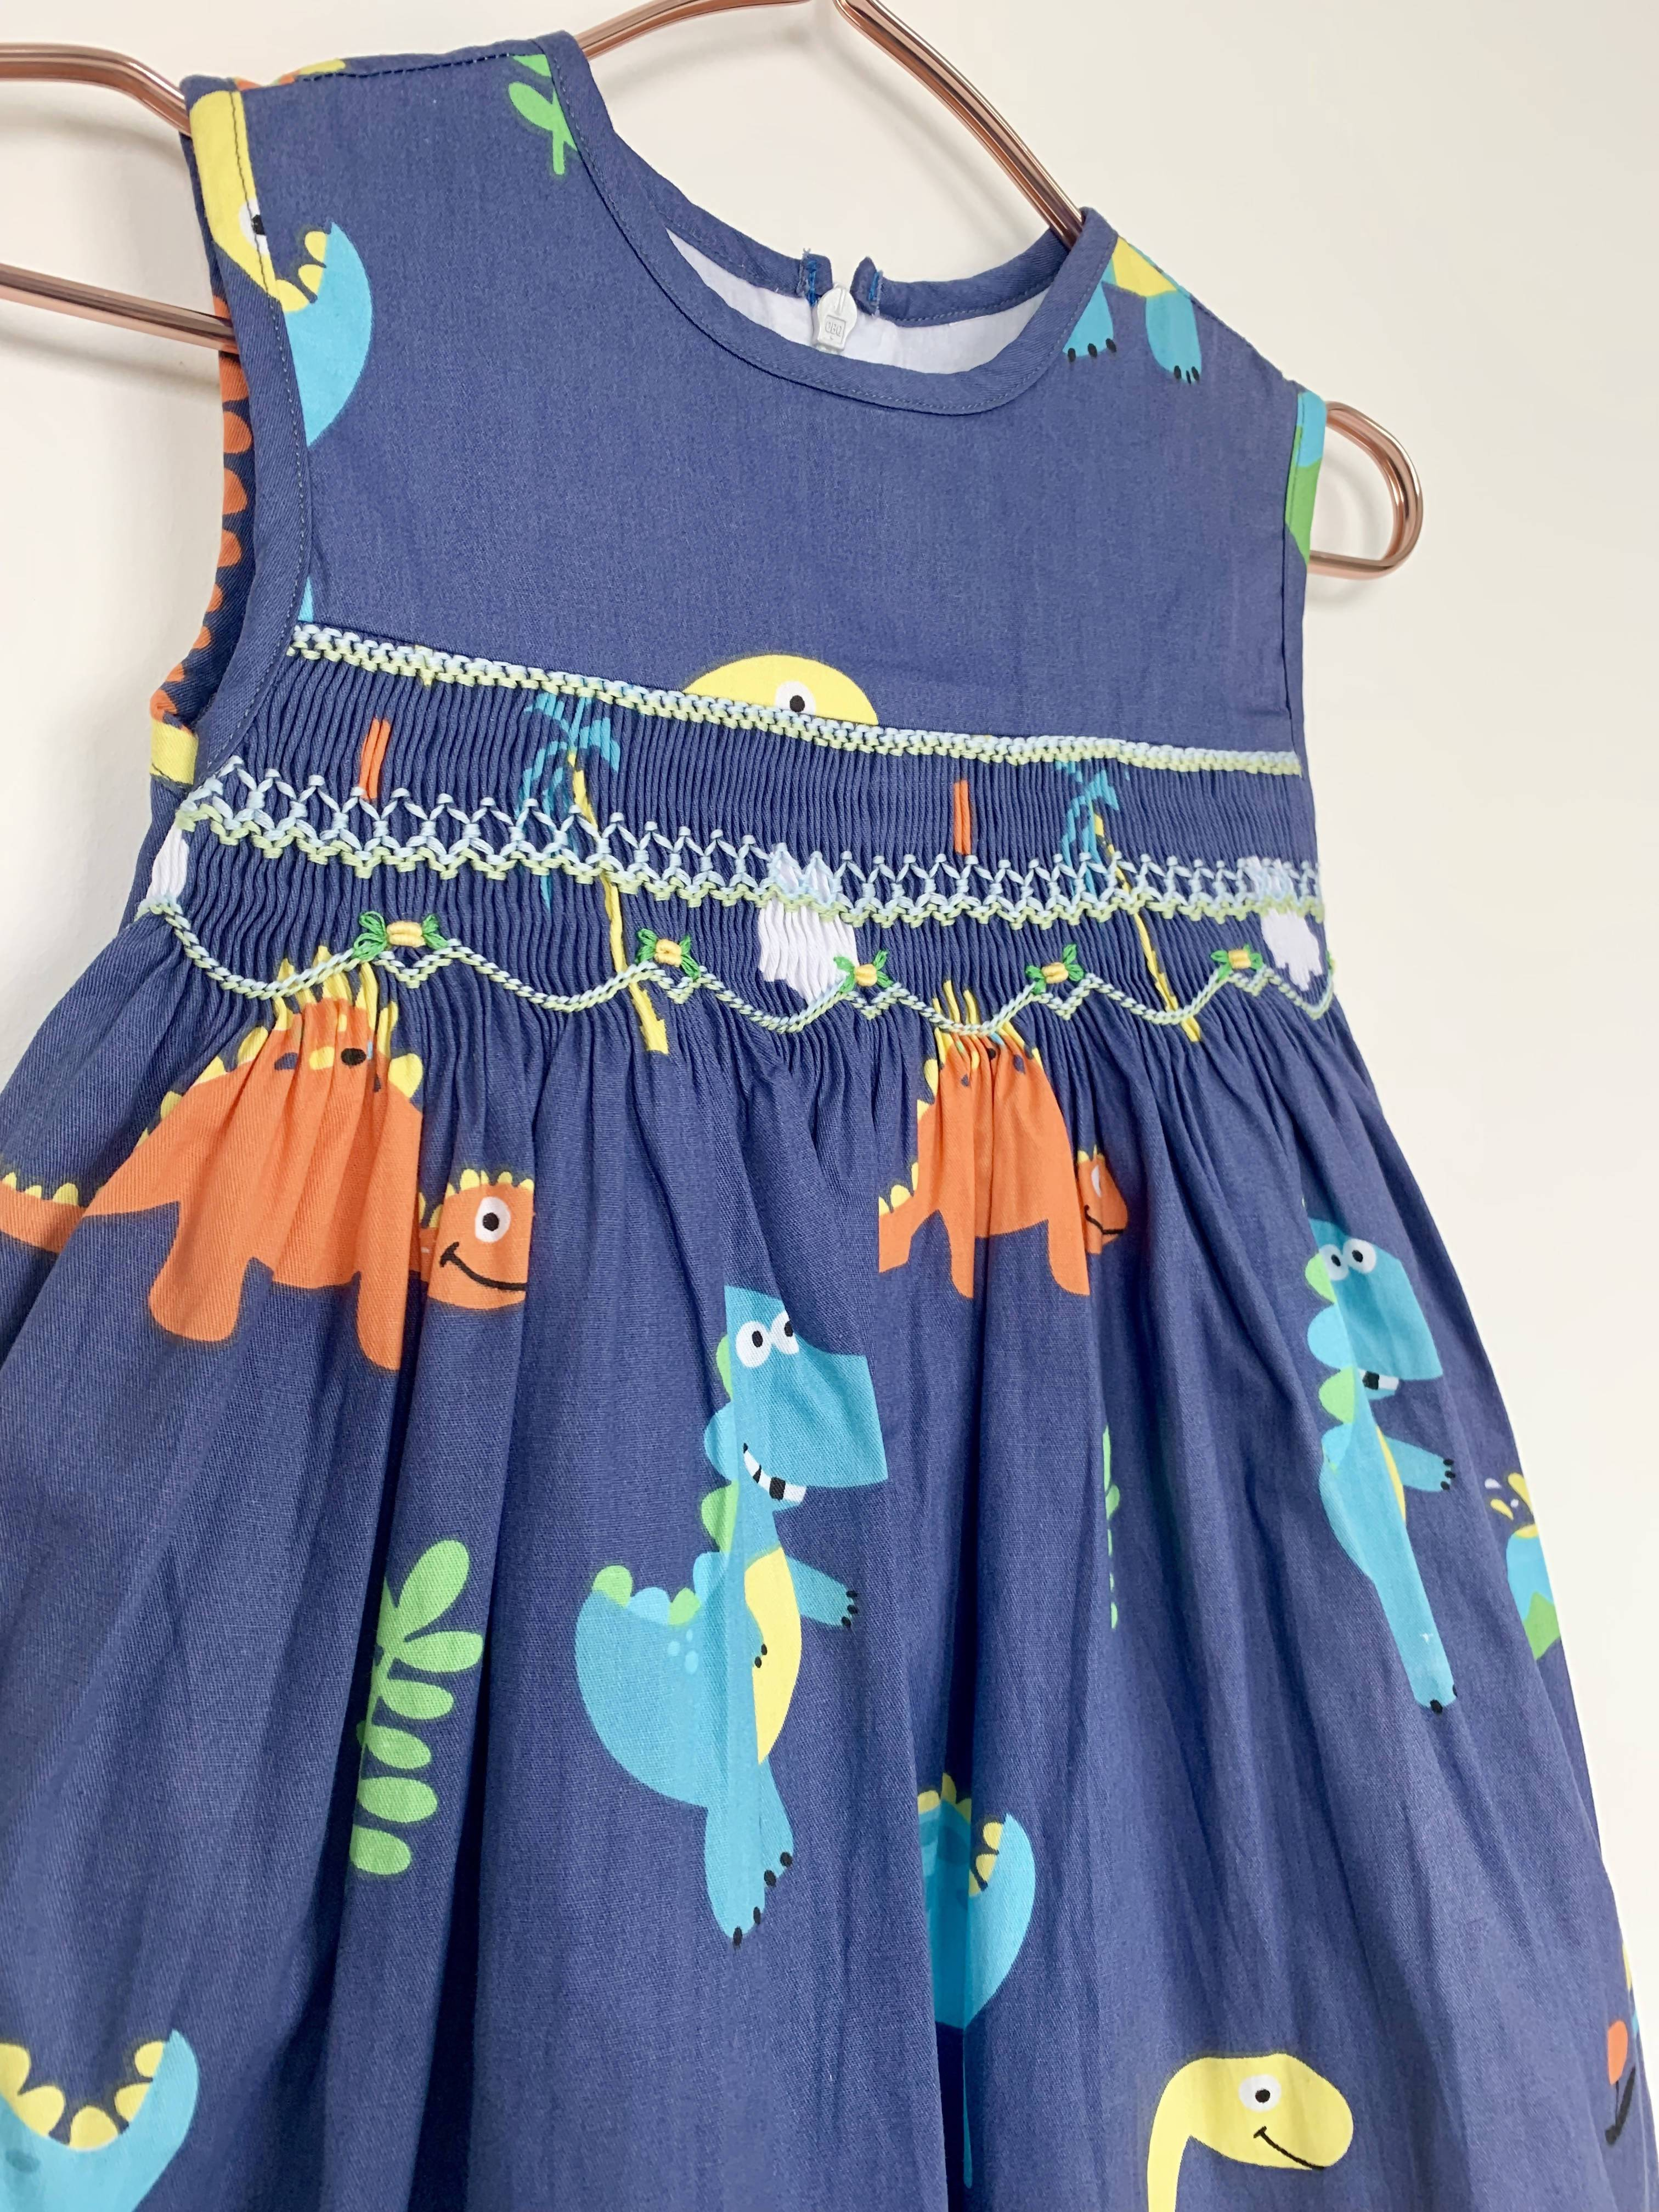 Dino Dress With Embroidered Flowers - Kids Clothing - Smockful Of Love - Naiise